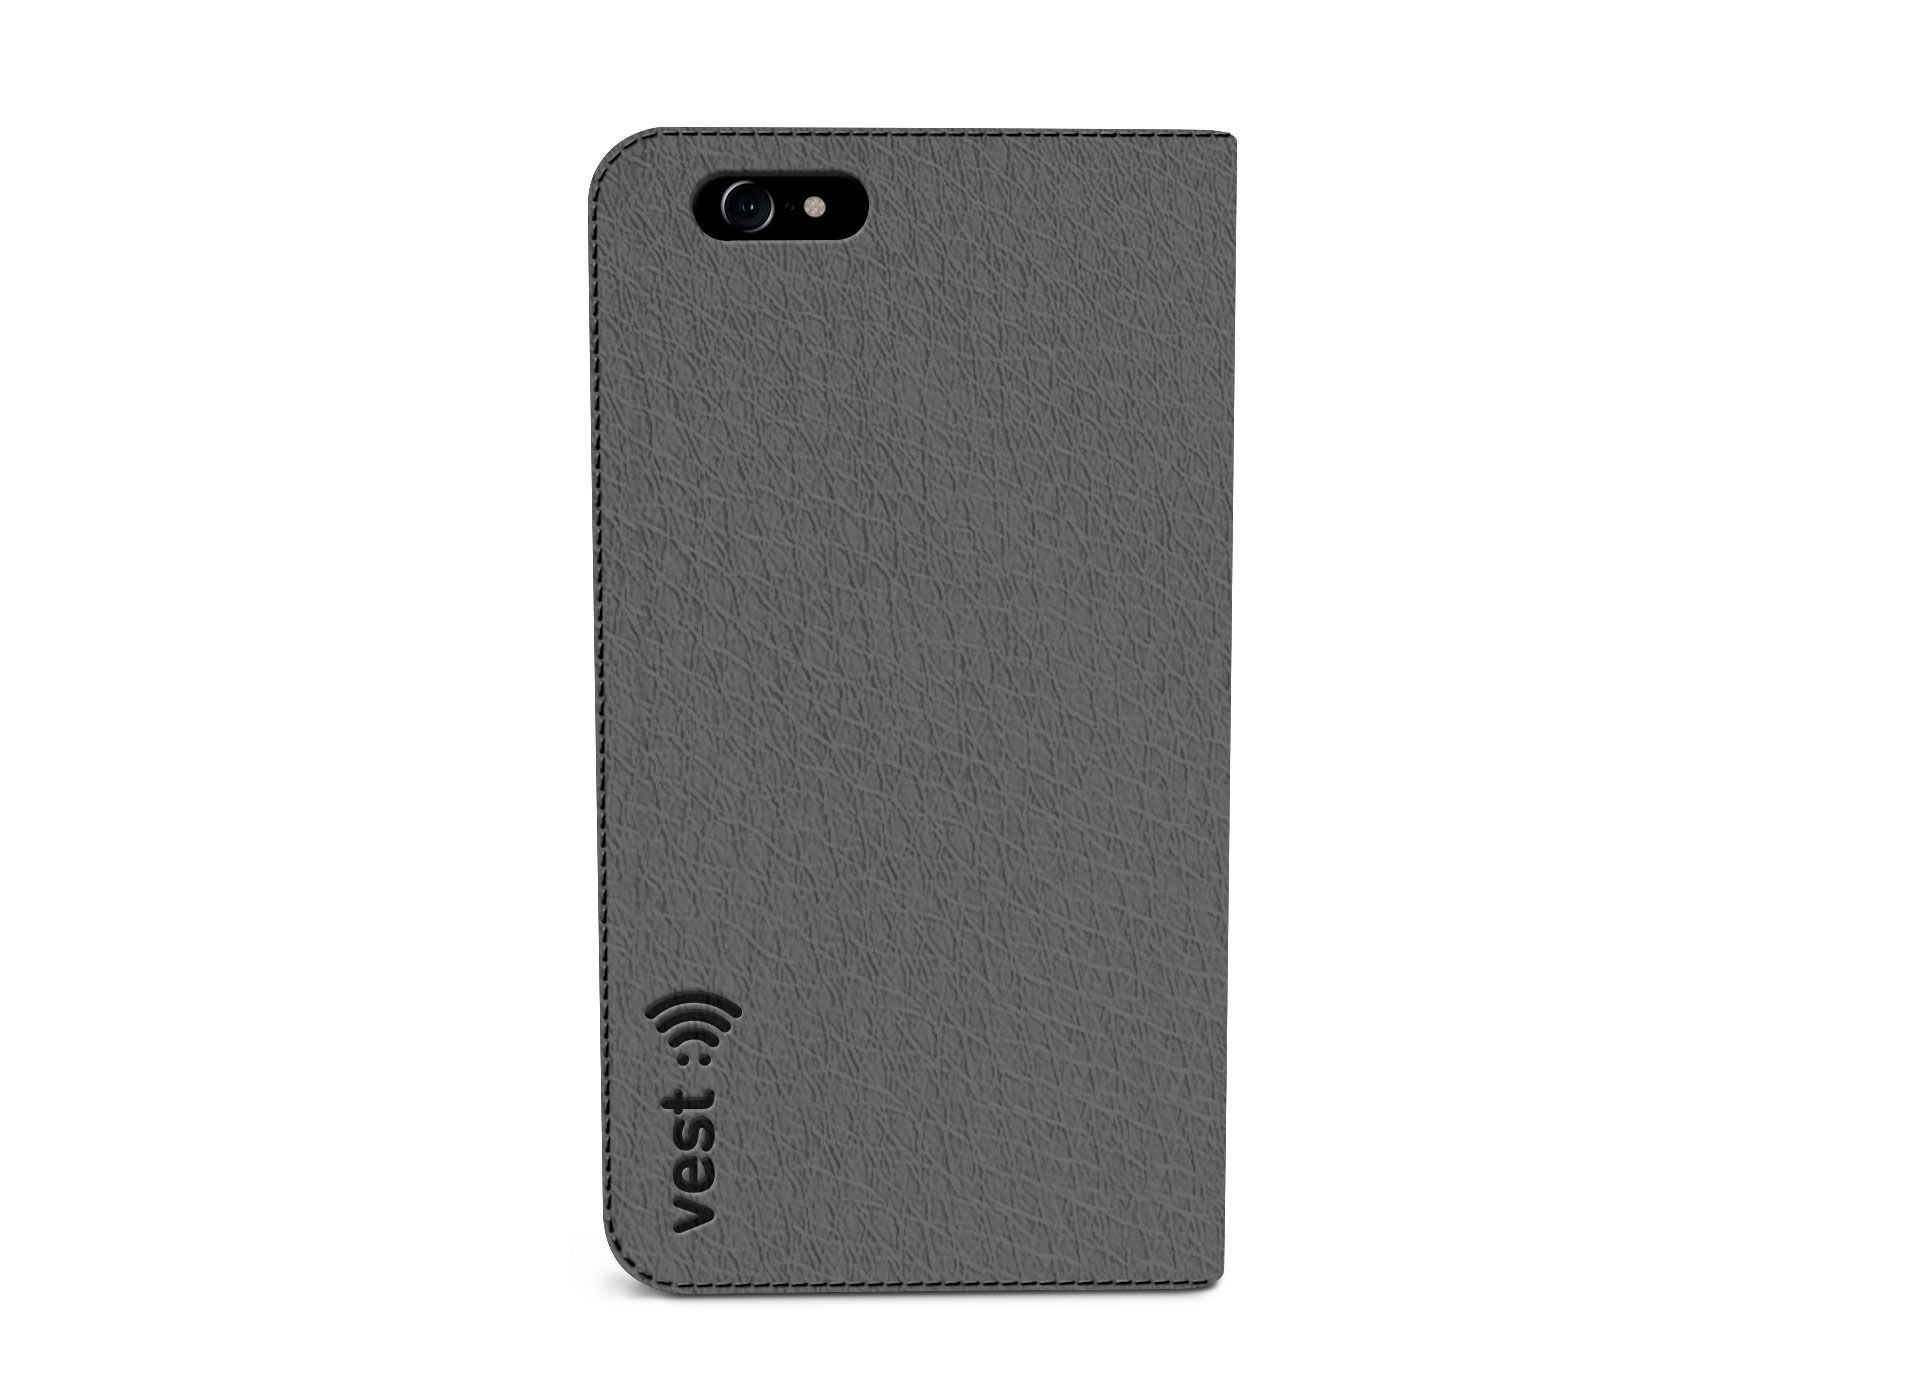 Vest Anti-Radiation Wallet and Phone Case Certified EMF & RFID Protection + Drop & Impact Protection, 98% Less Radiation. FCC Certified phone Case, Phone wallet, Anti radiation,